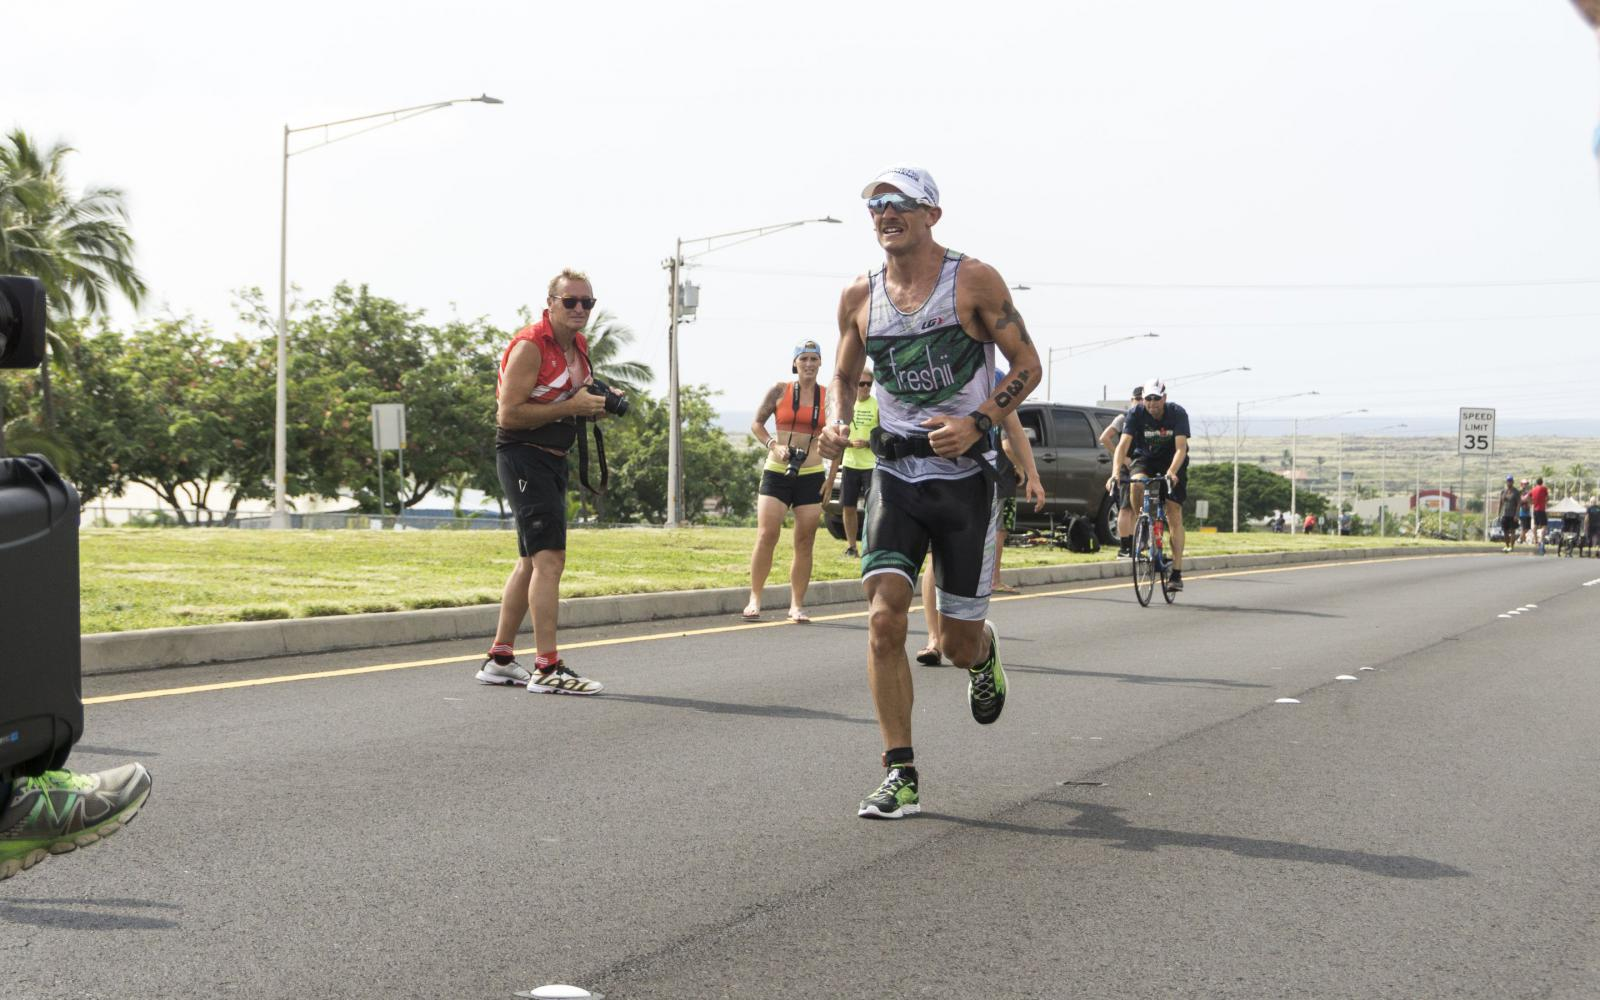 How Lionel Sanders can win the Ironman Hawaii in 2018